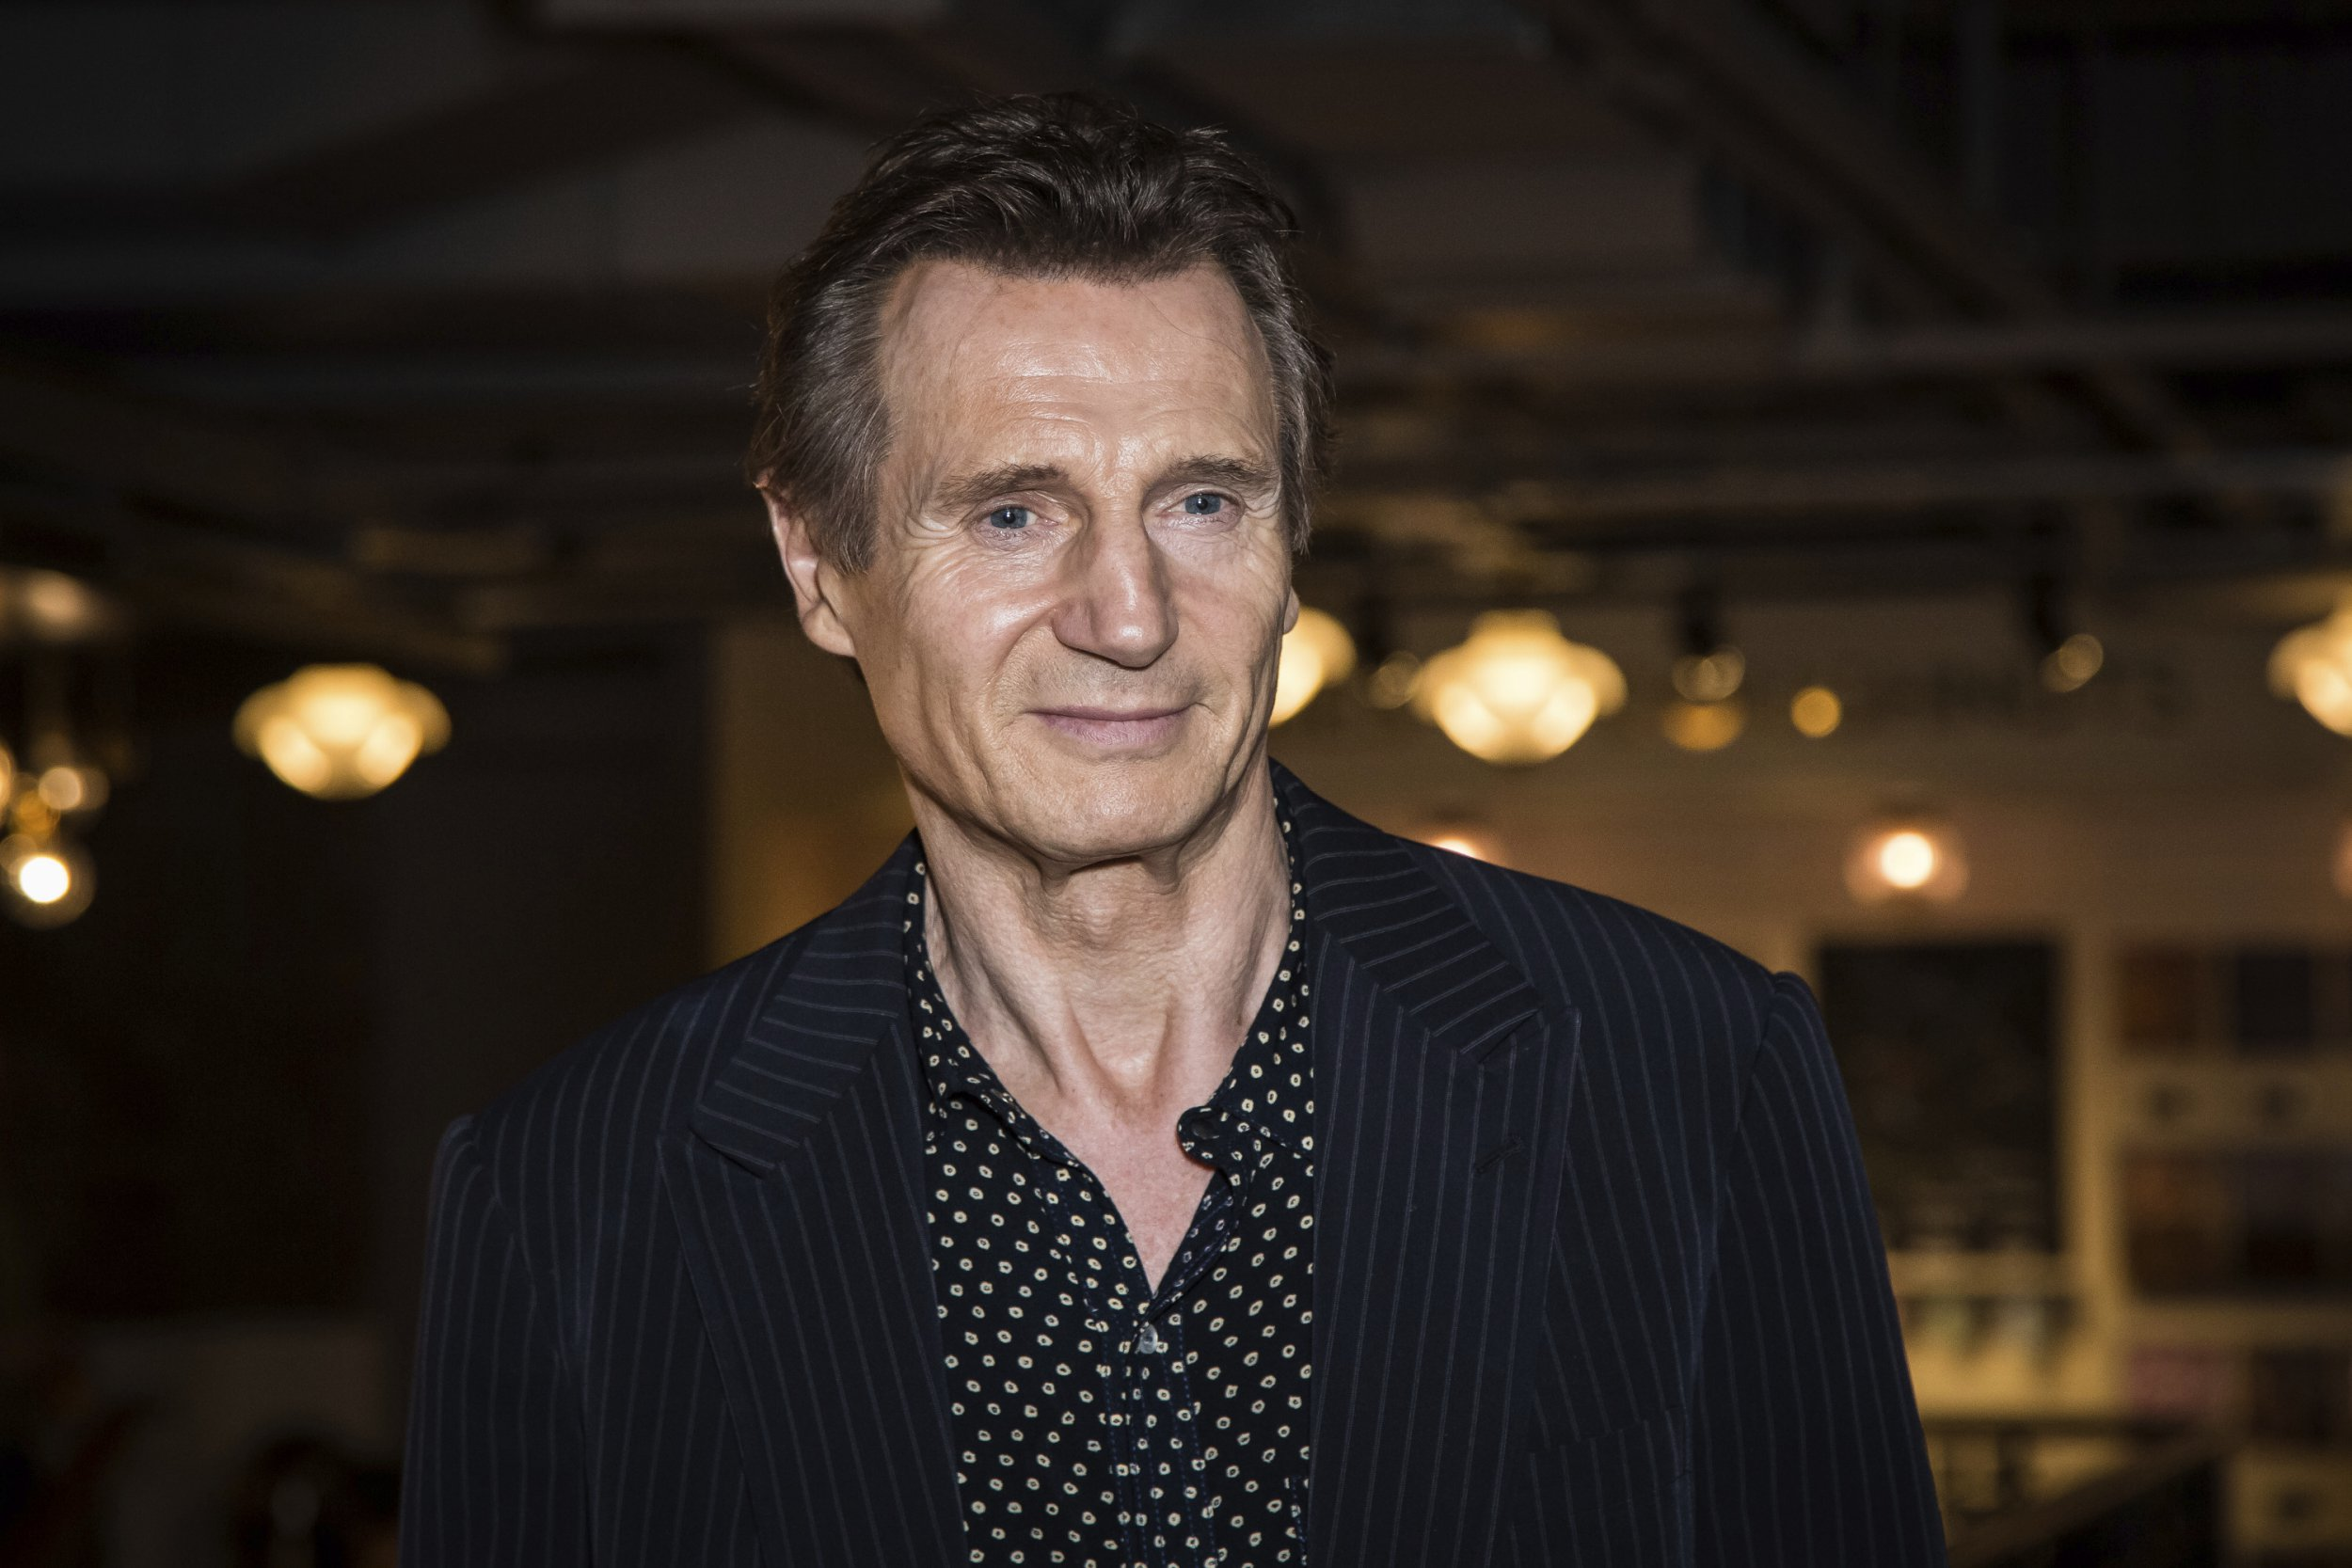 Liam Neeson admitted to 'racial profiling' five years ago: 'We all do it, I know I do'